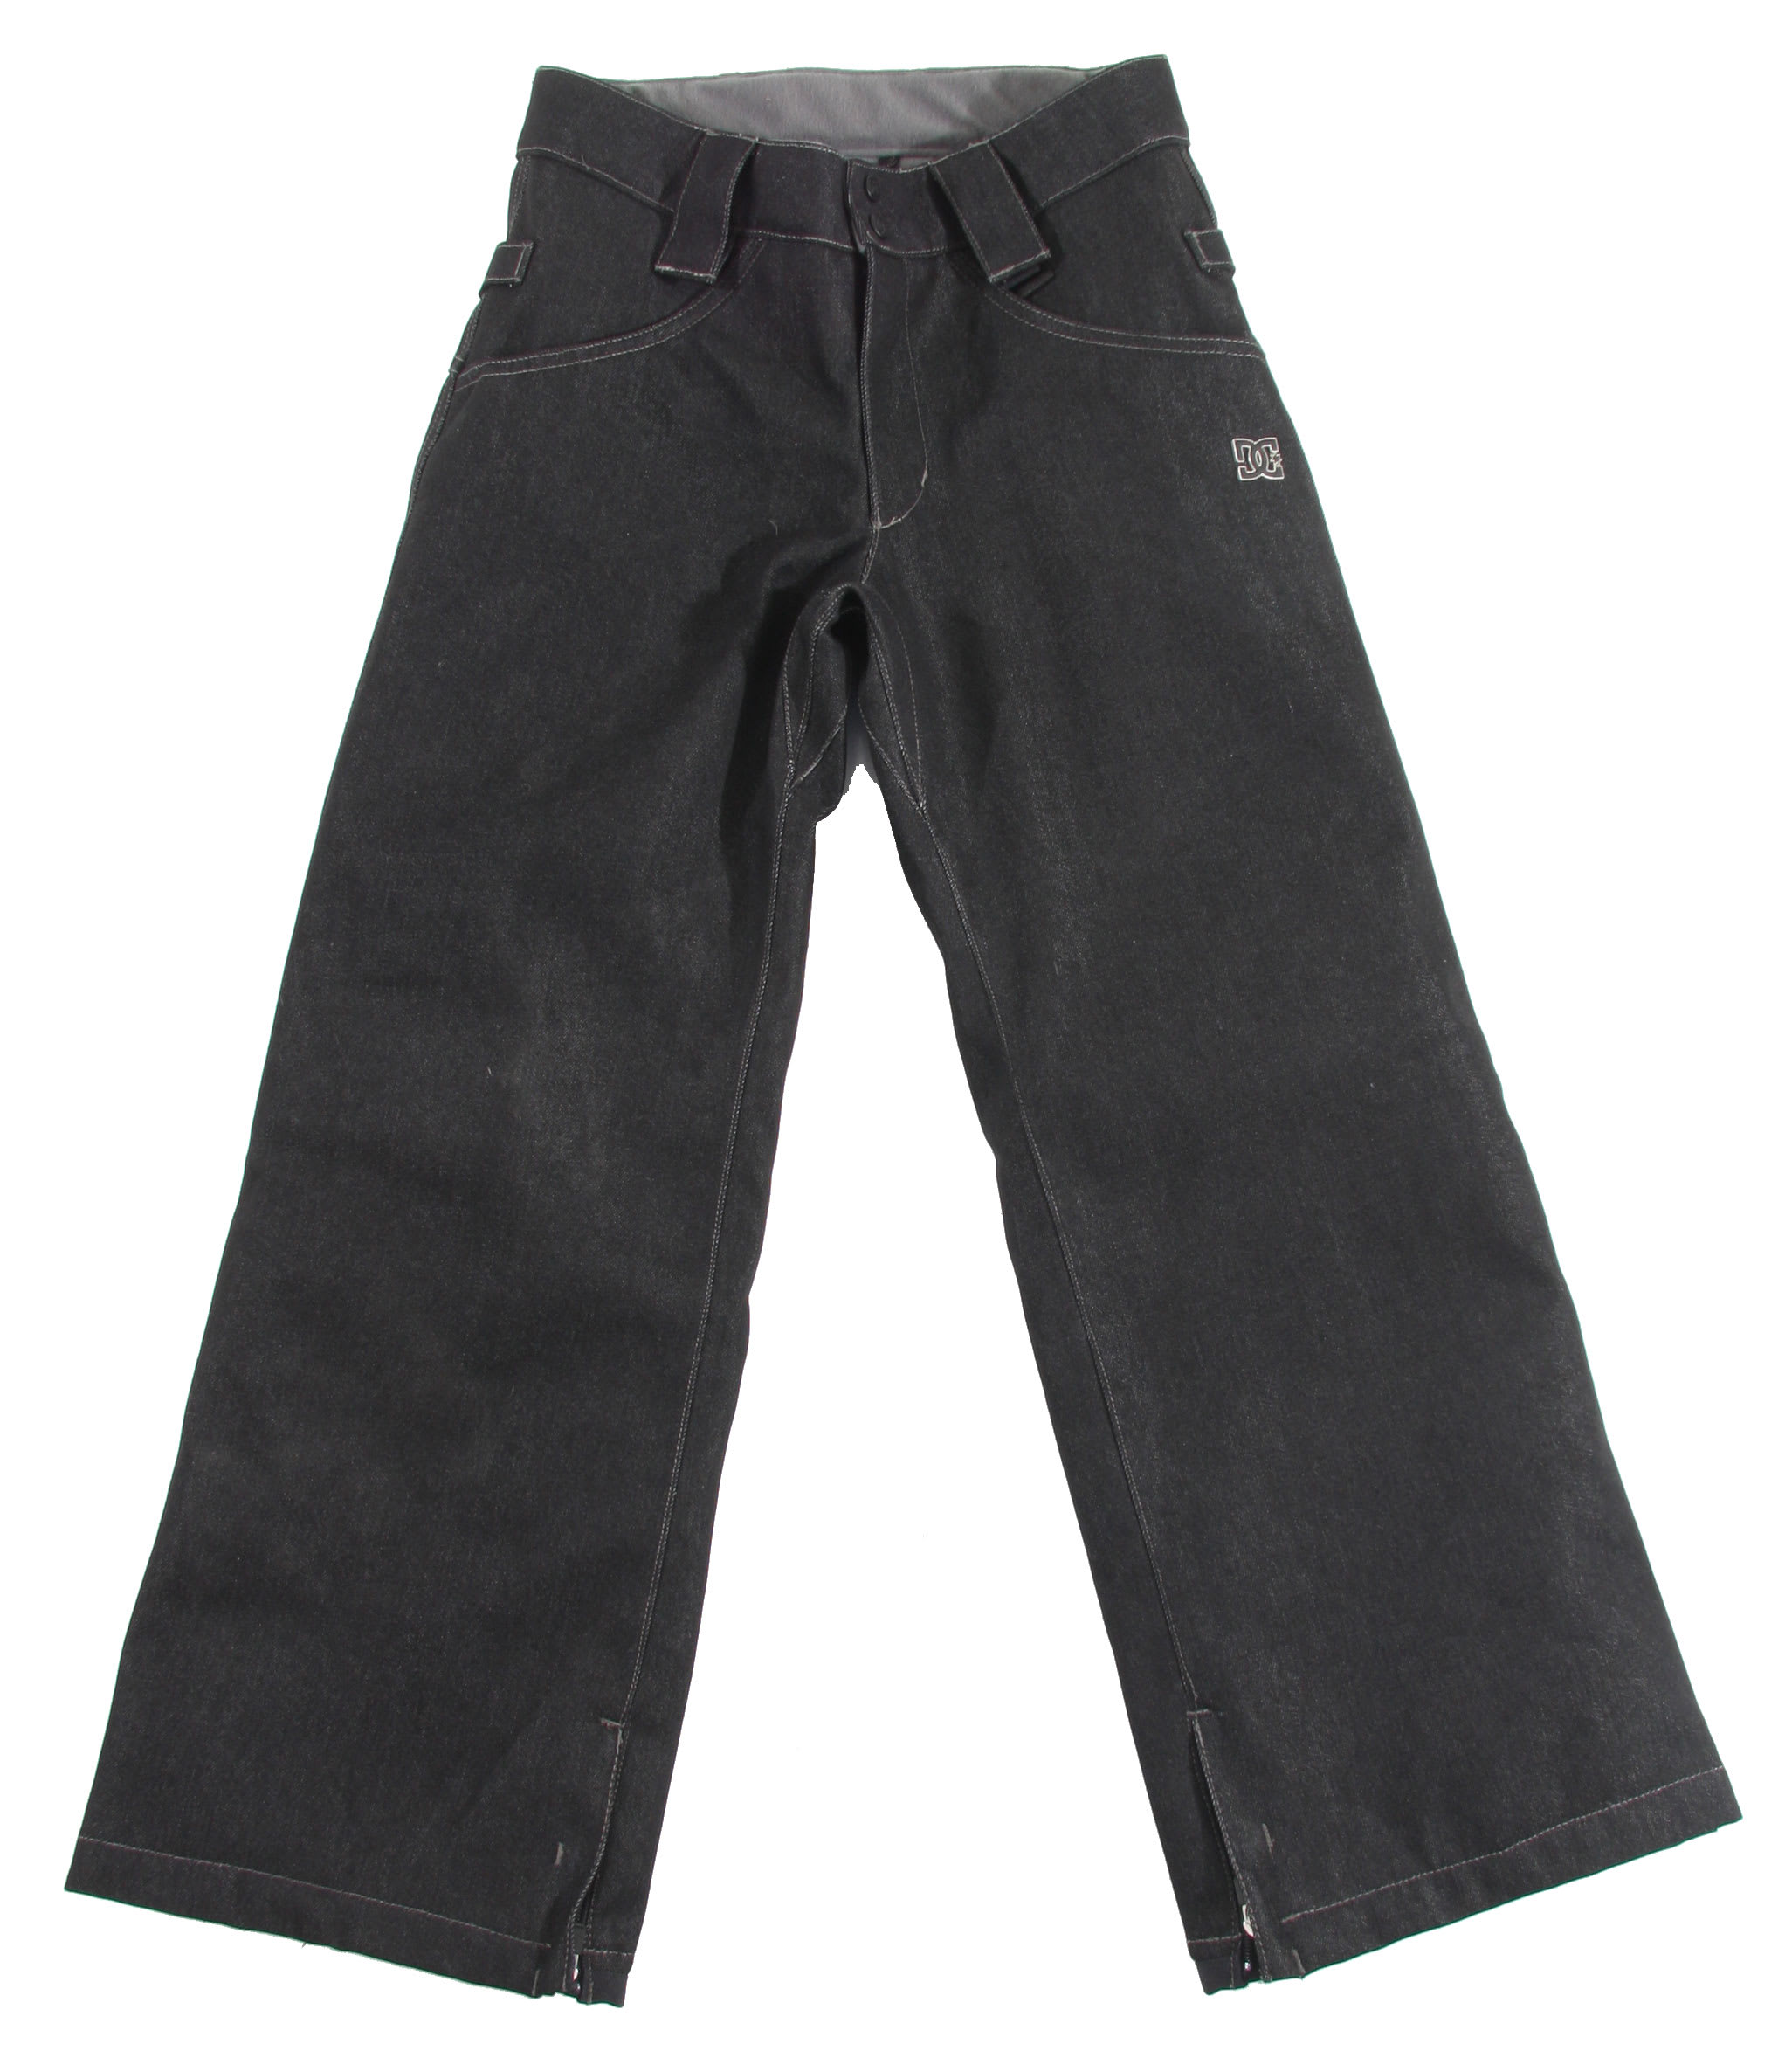 Shop for DC Sega Snowboard Pants Black - Kid's